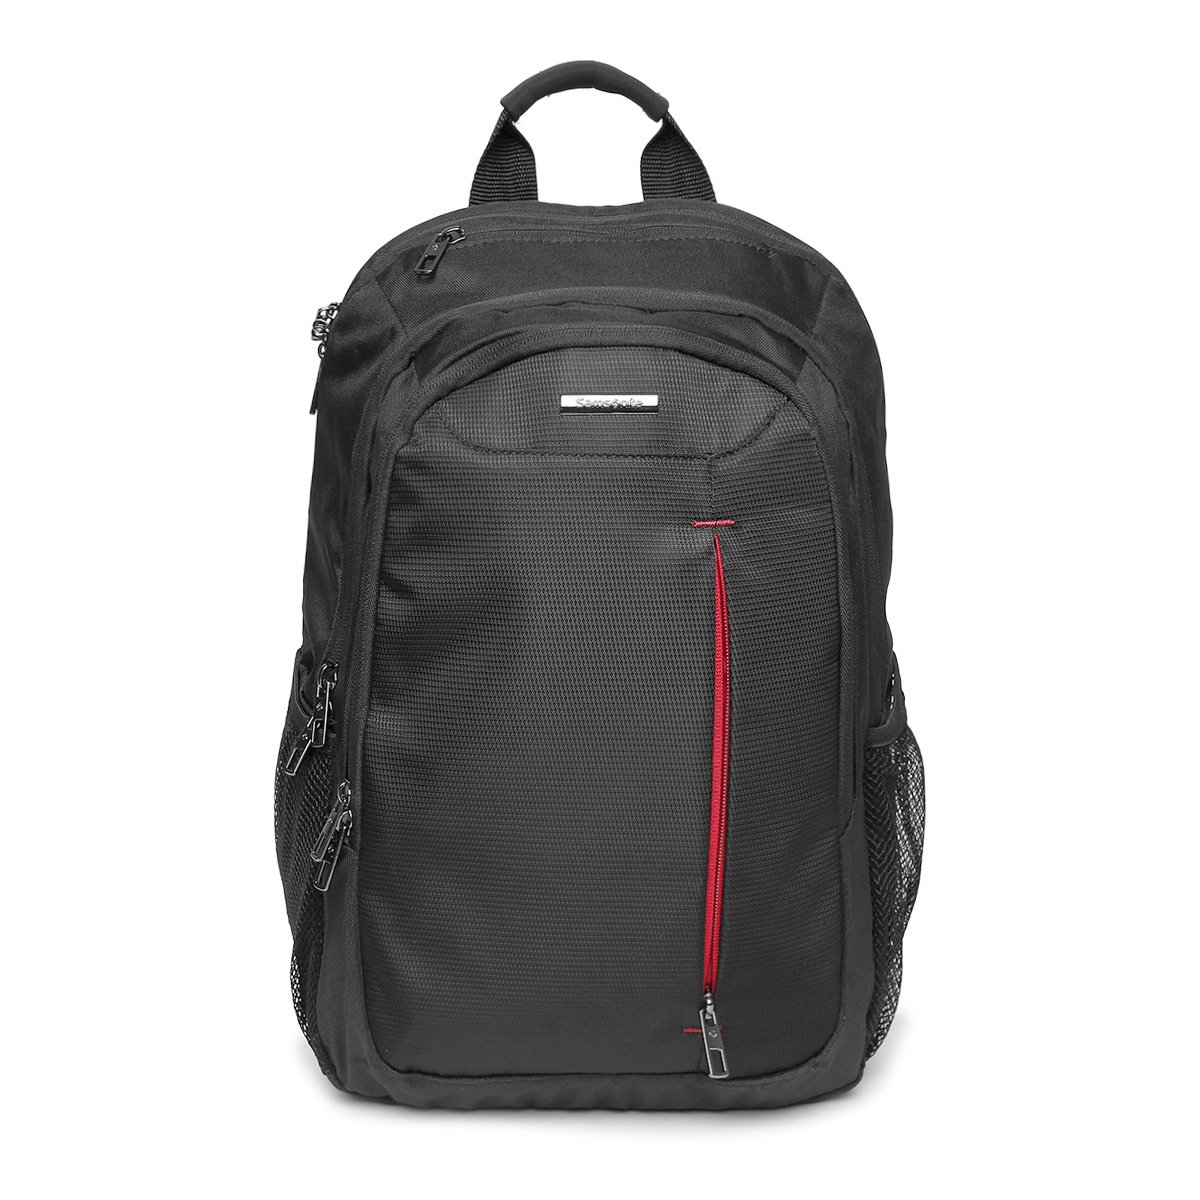 Mochila Samsonite para Notebook Guard IT Preto - 6